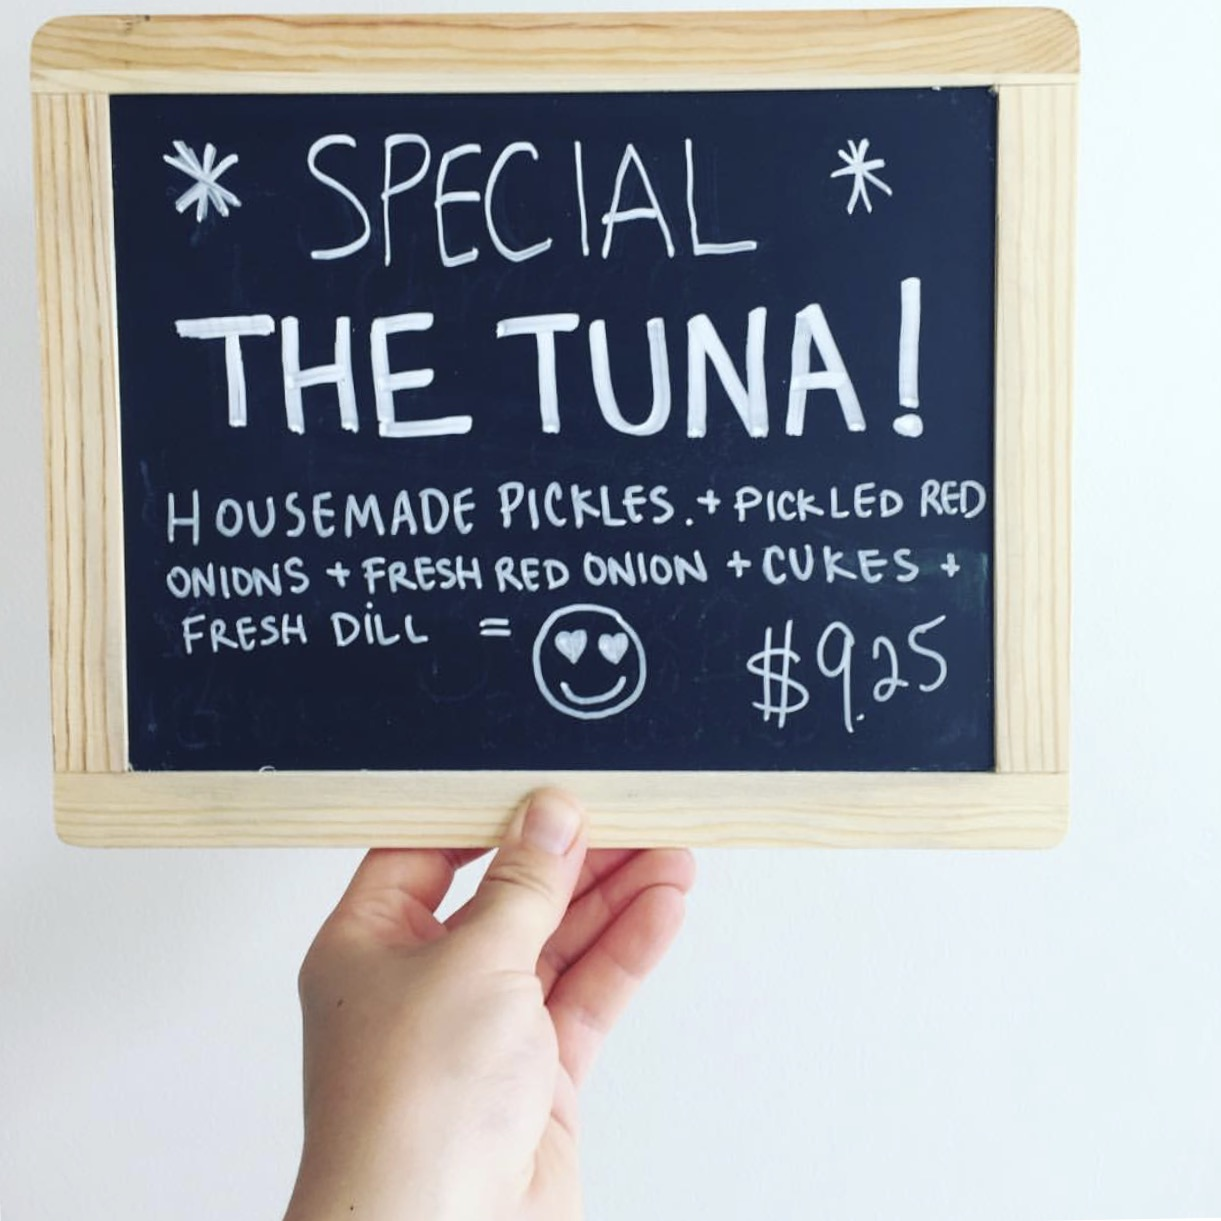 """Photo cred  Lox + Schmear Instagram   Accessibility [Photo Description: small chalkboard with the message """"Special The Tuna, house made pickles + pickled red onions + fresh red onion + cukes + fresh dill = heart eyes smiley face emoji $9.25]"""